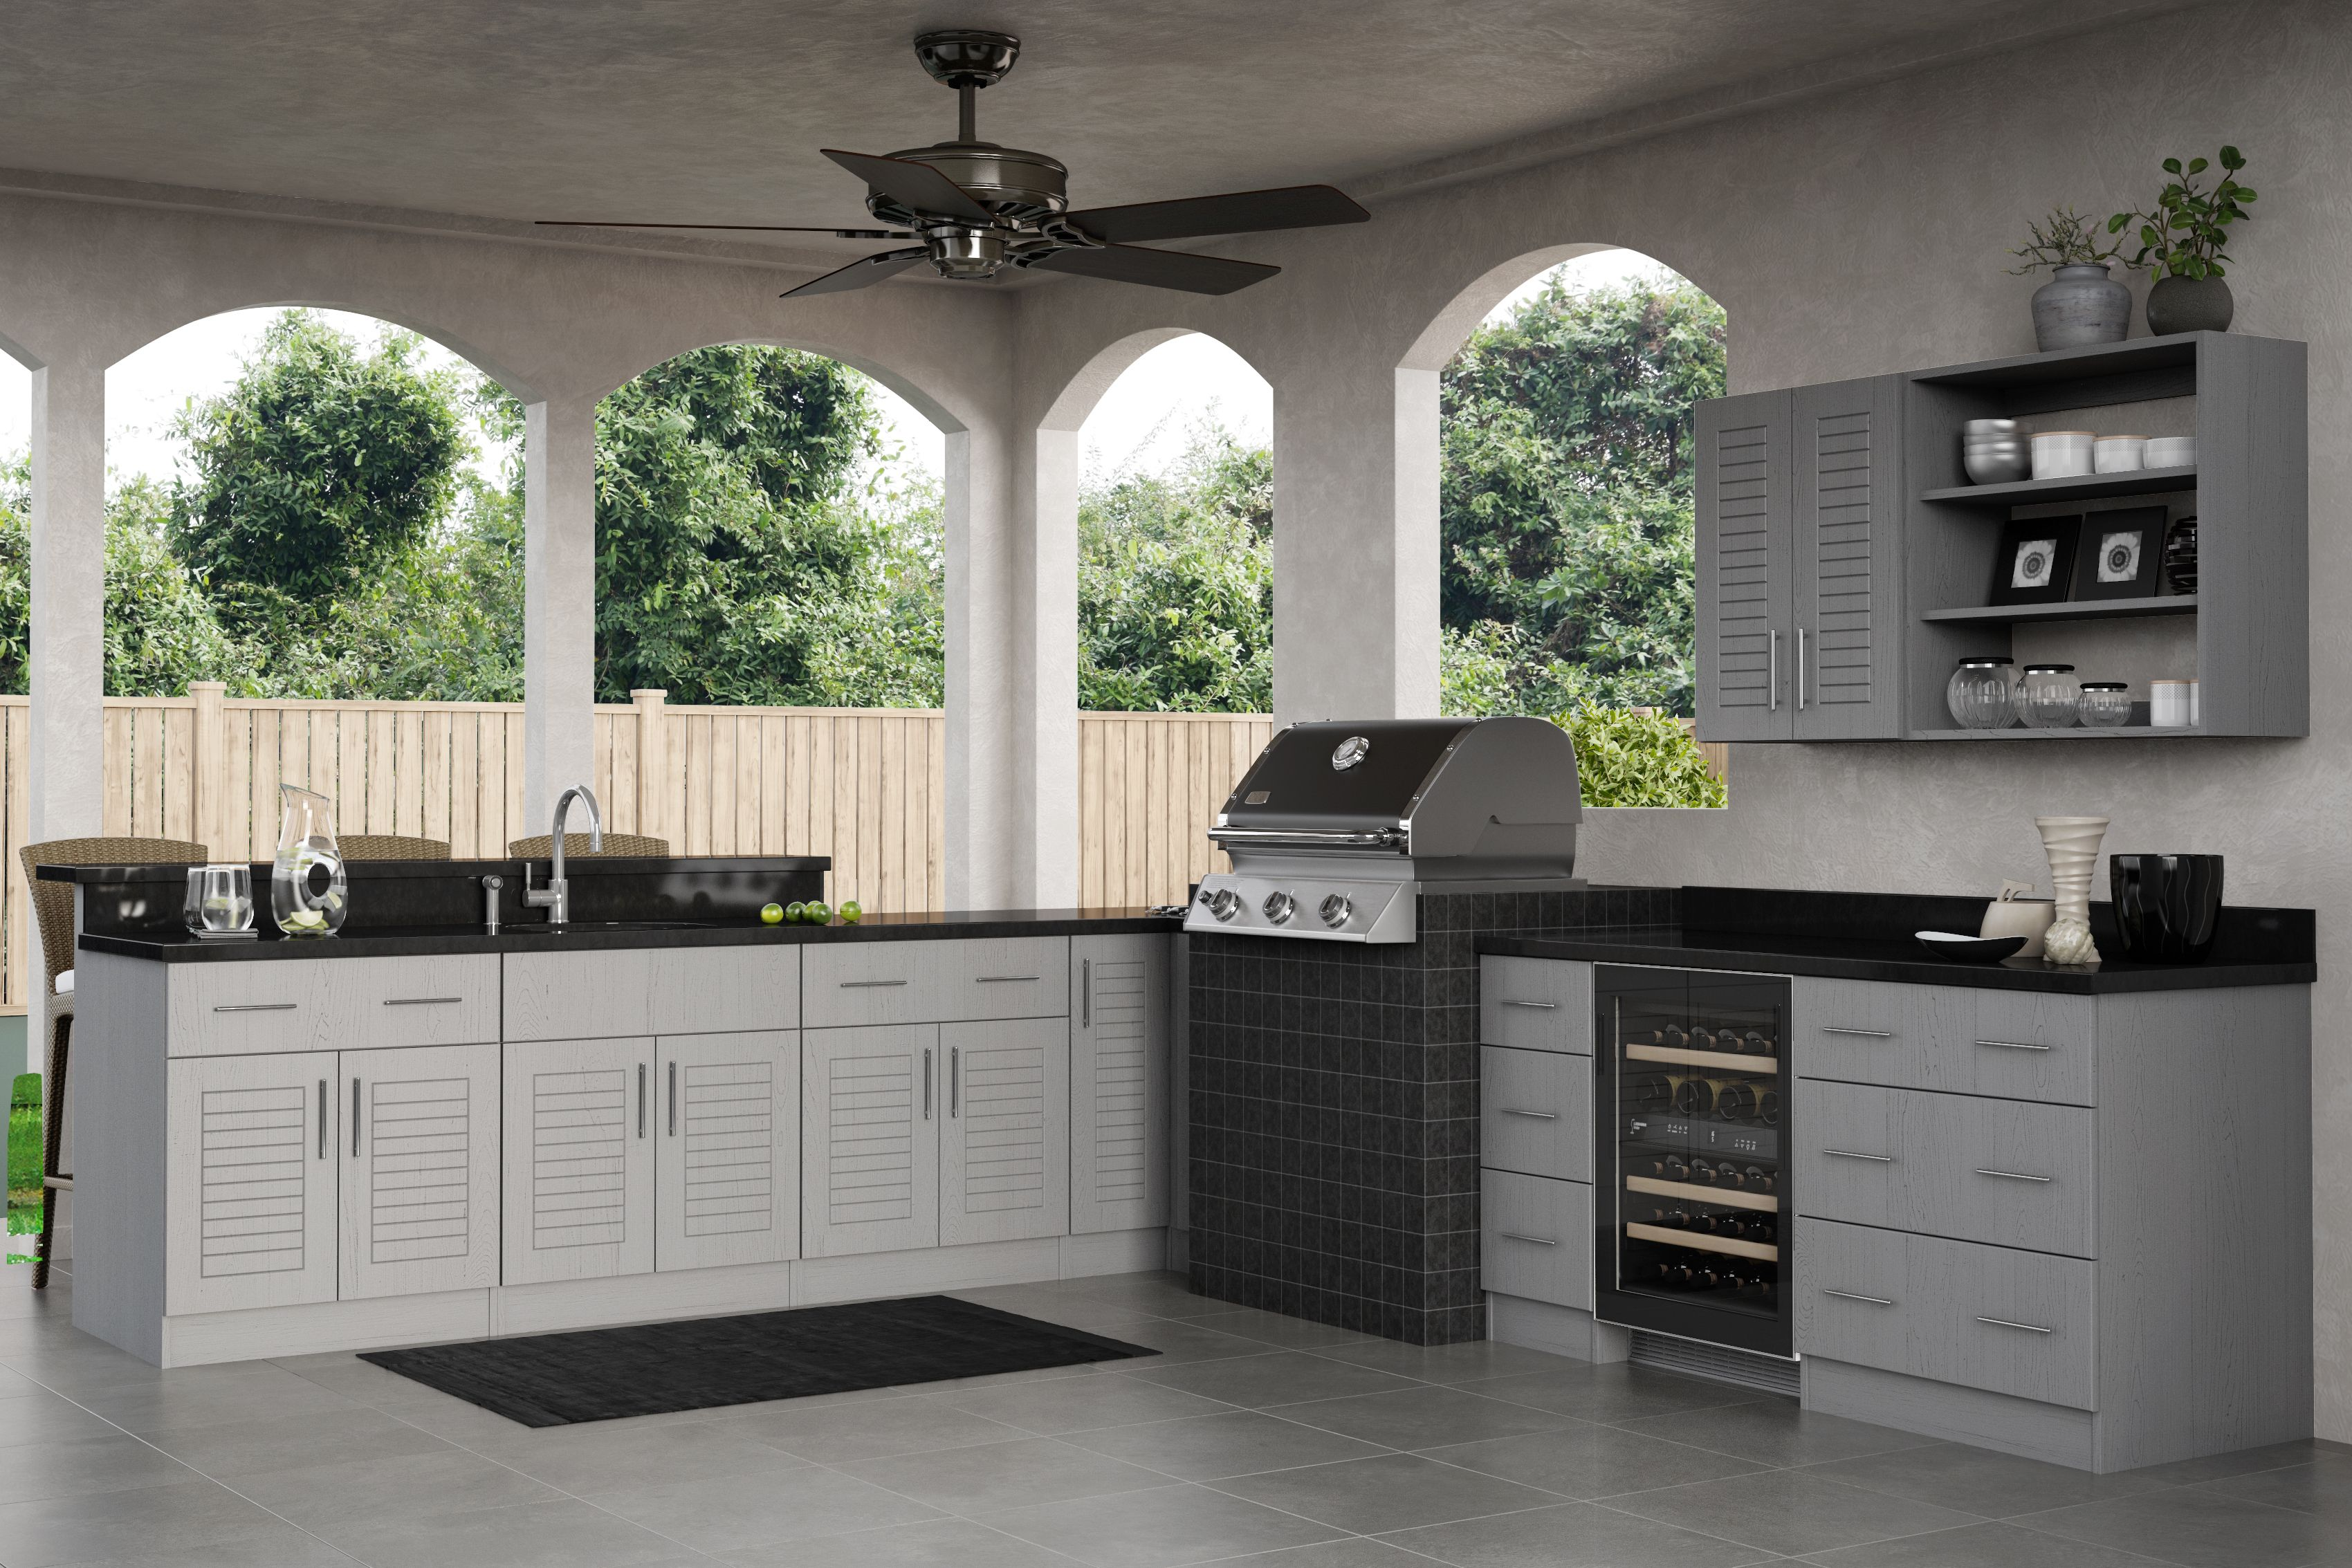 Cool Key West Rustic Gray Weather Strong Outdoor Cabinetry Complete Home Design Collection Lindsey Bellcom